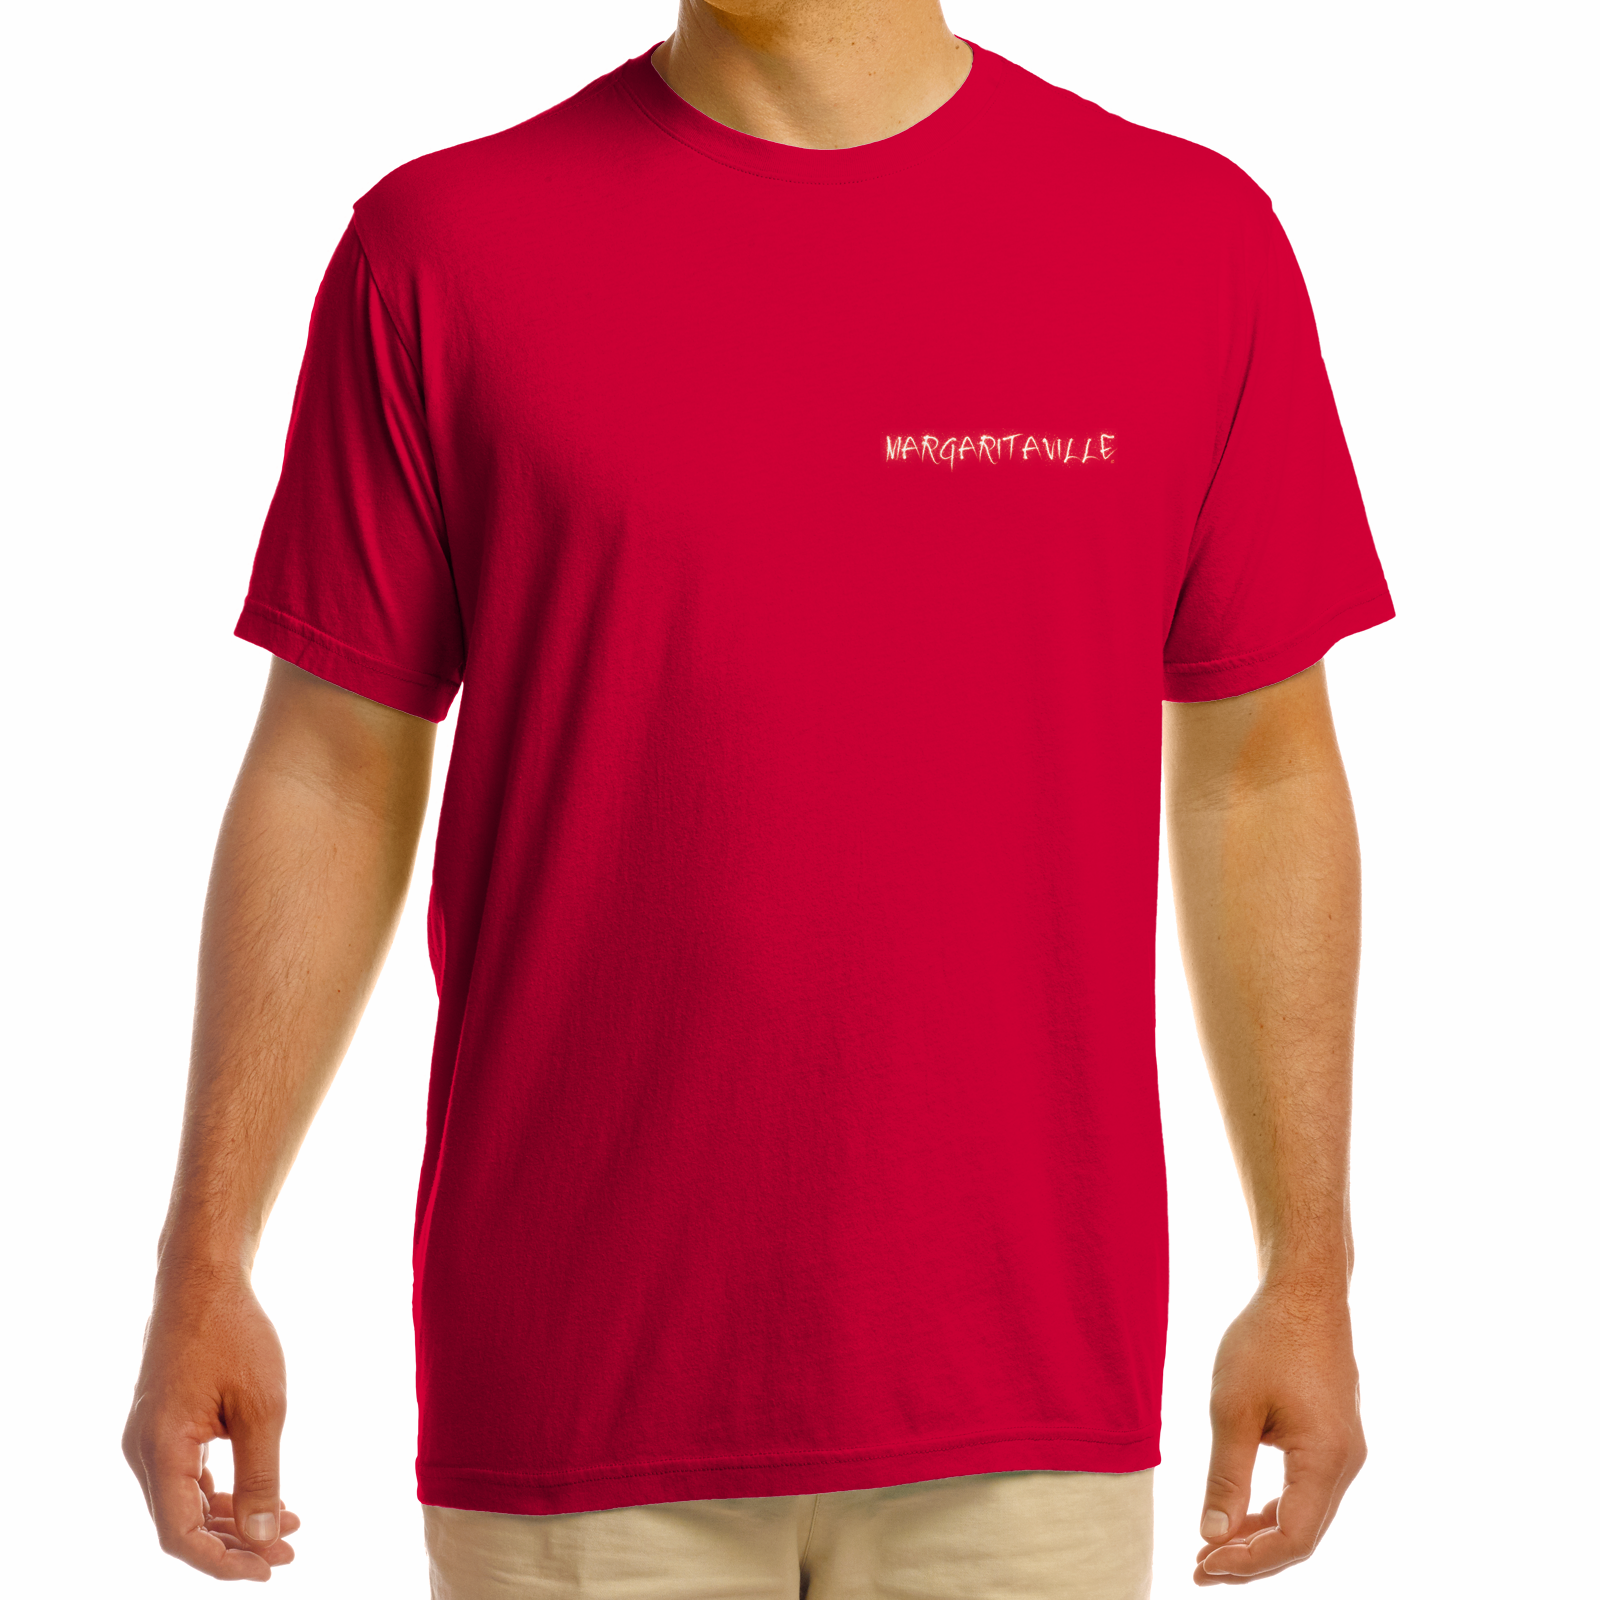 d06ad51336e6 4TH OF JULY T-SHIRT - Margaritaville Apparel Store